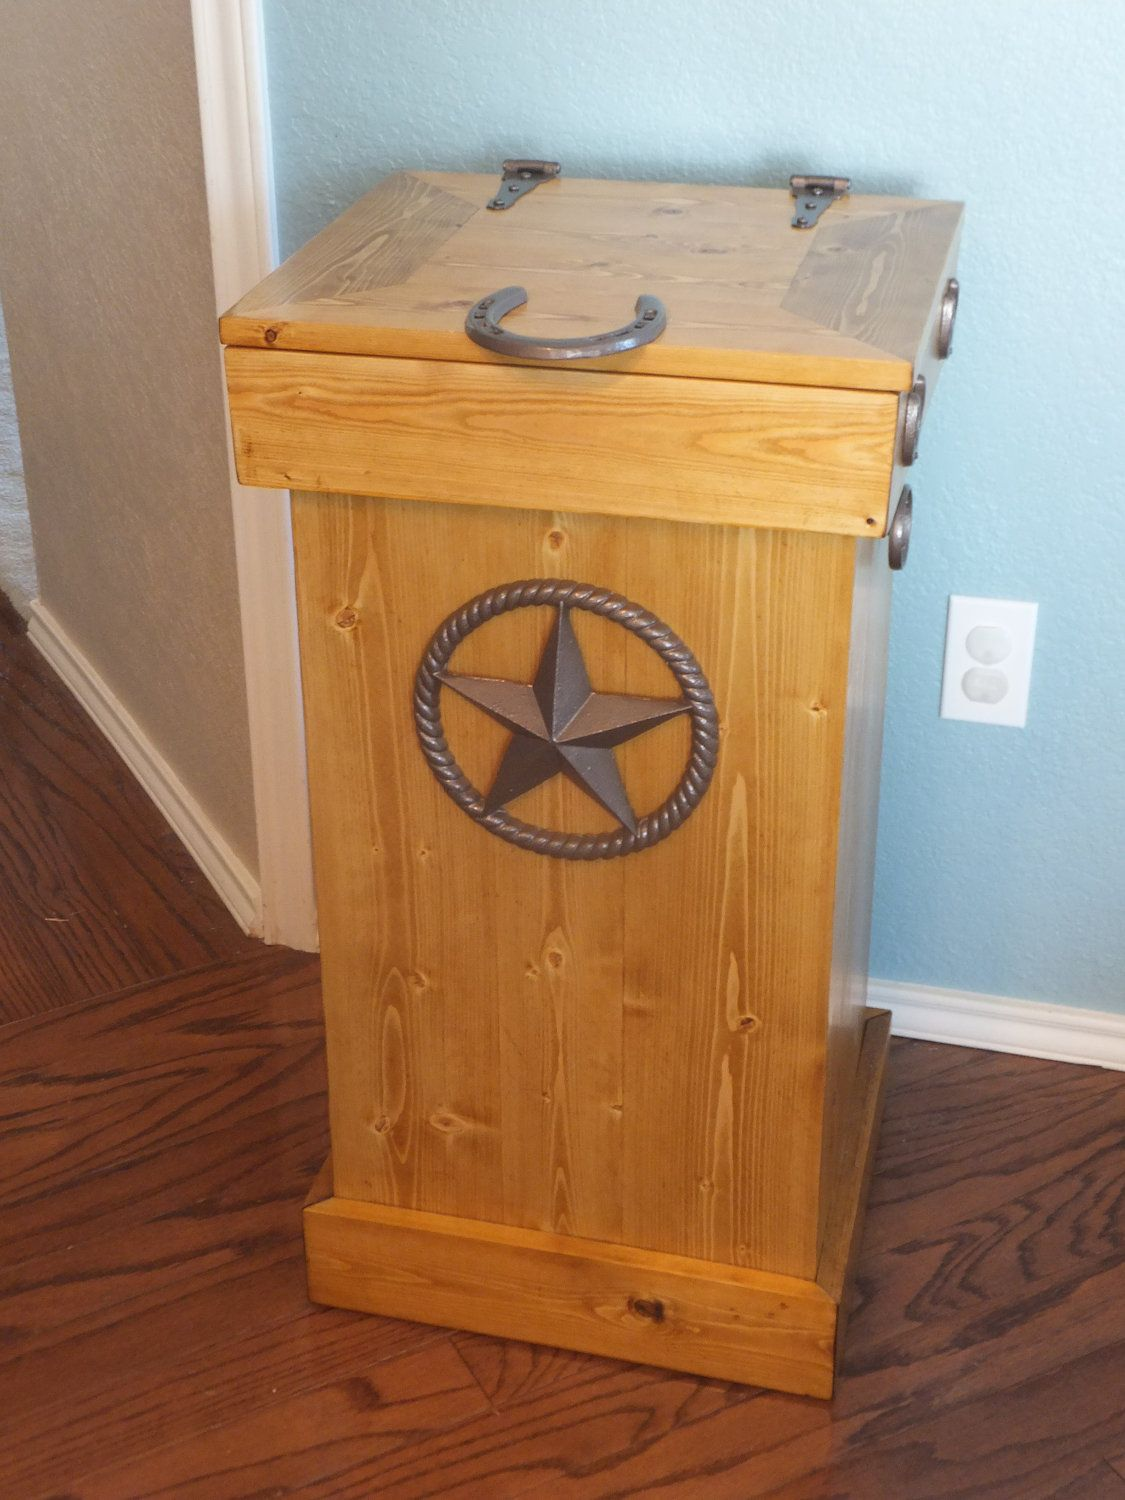 Kitchen Accessories. Wooden Decorative Kitchen Garbage Cans Feature Ochre  Wood Square Trash Can With Star Decor And Square Wood Lid.